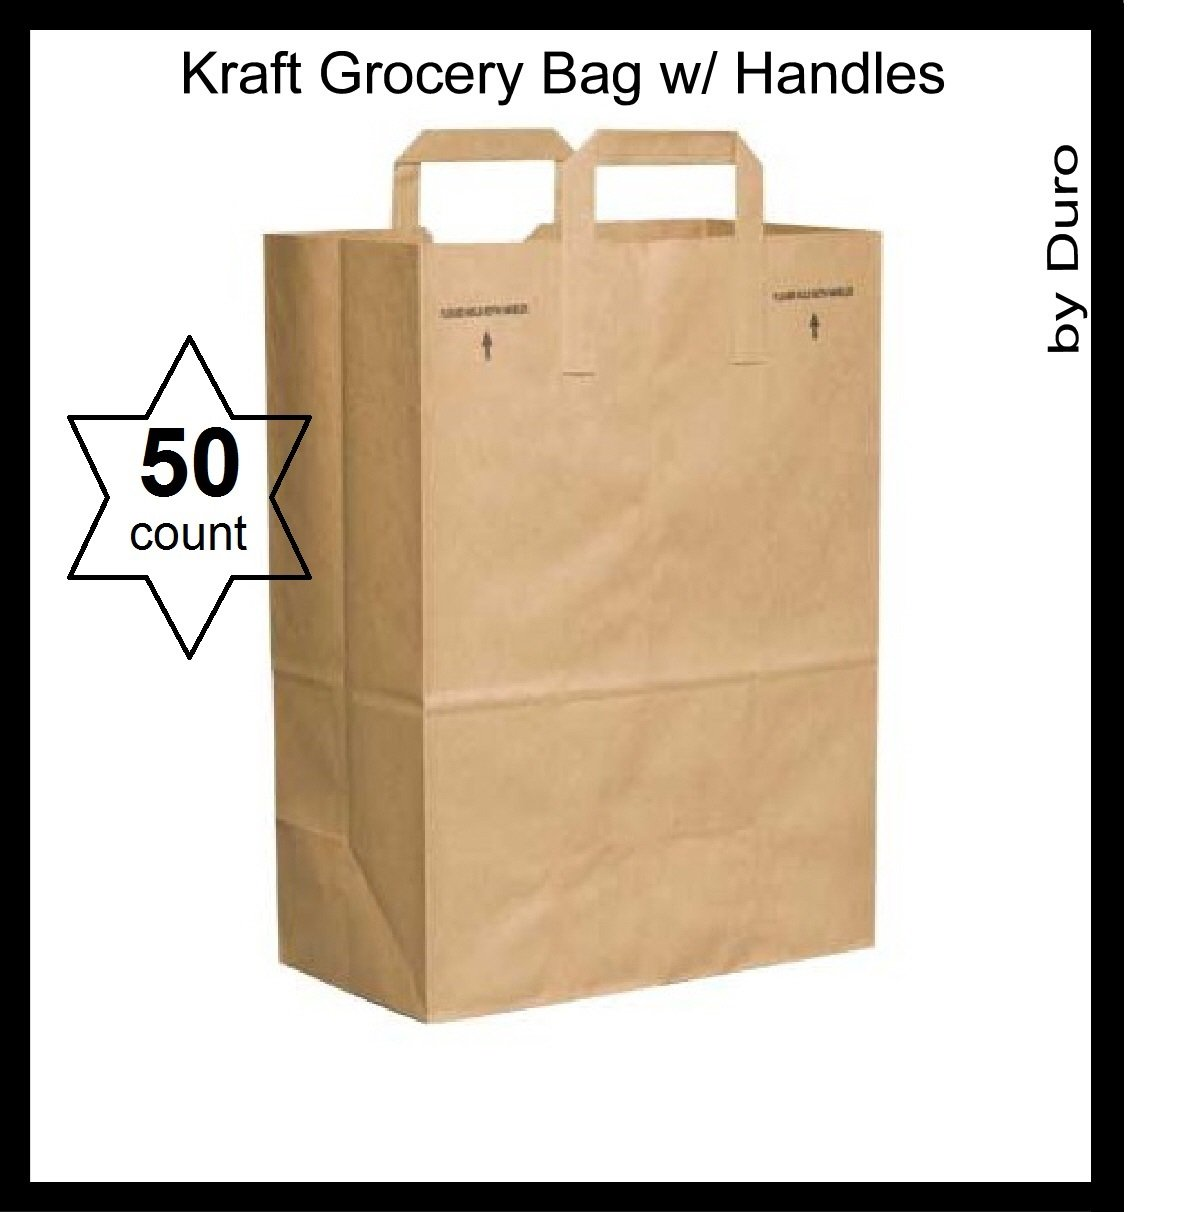 Retail paper bags with handles